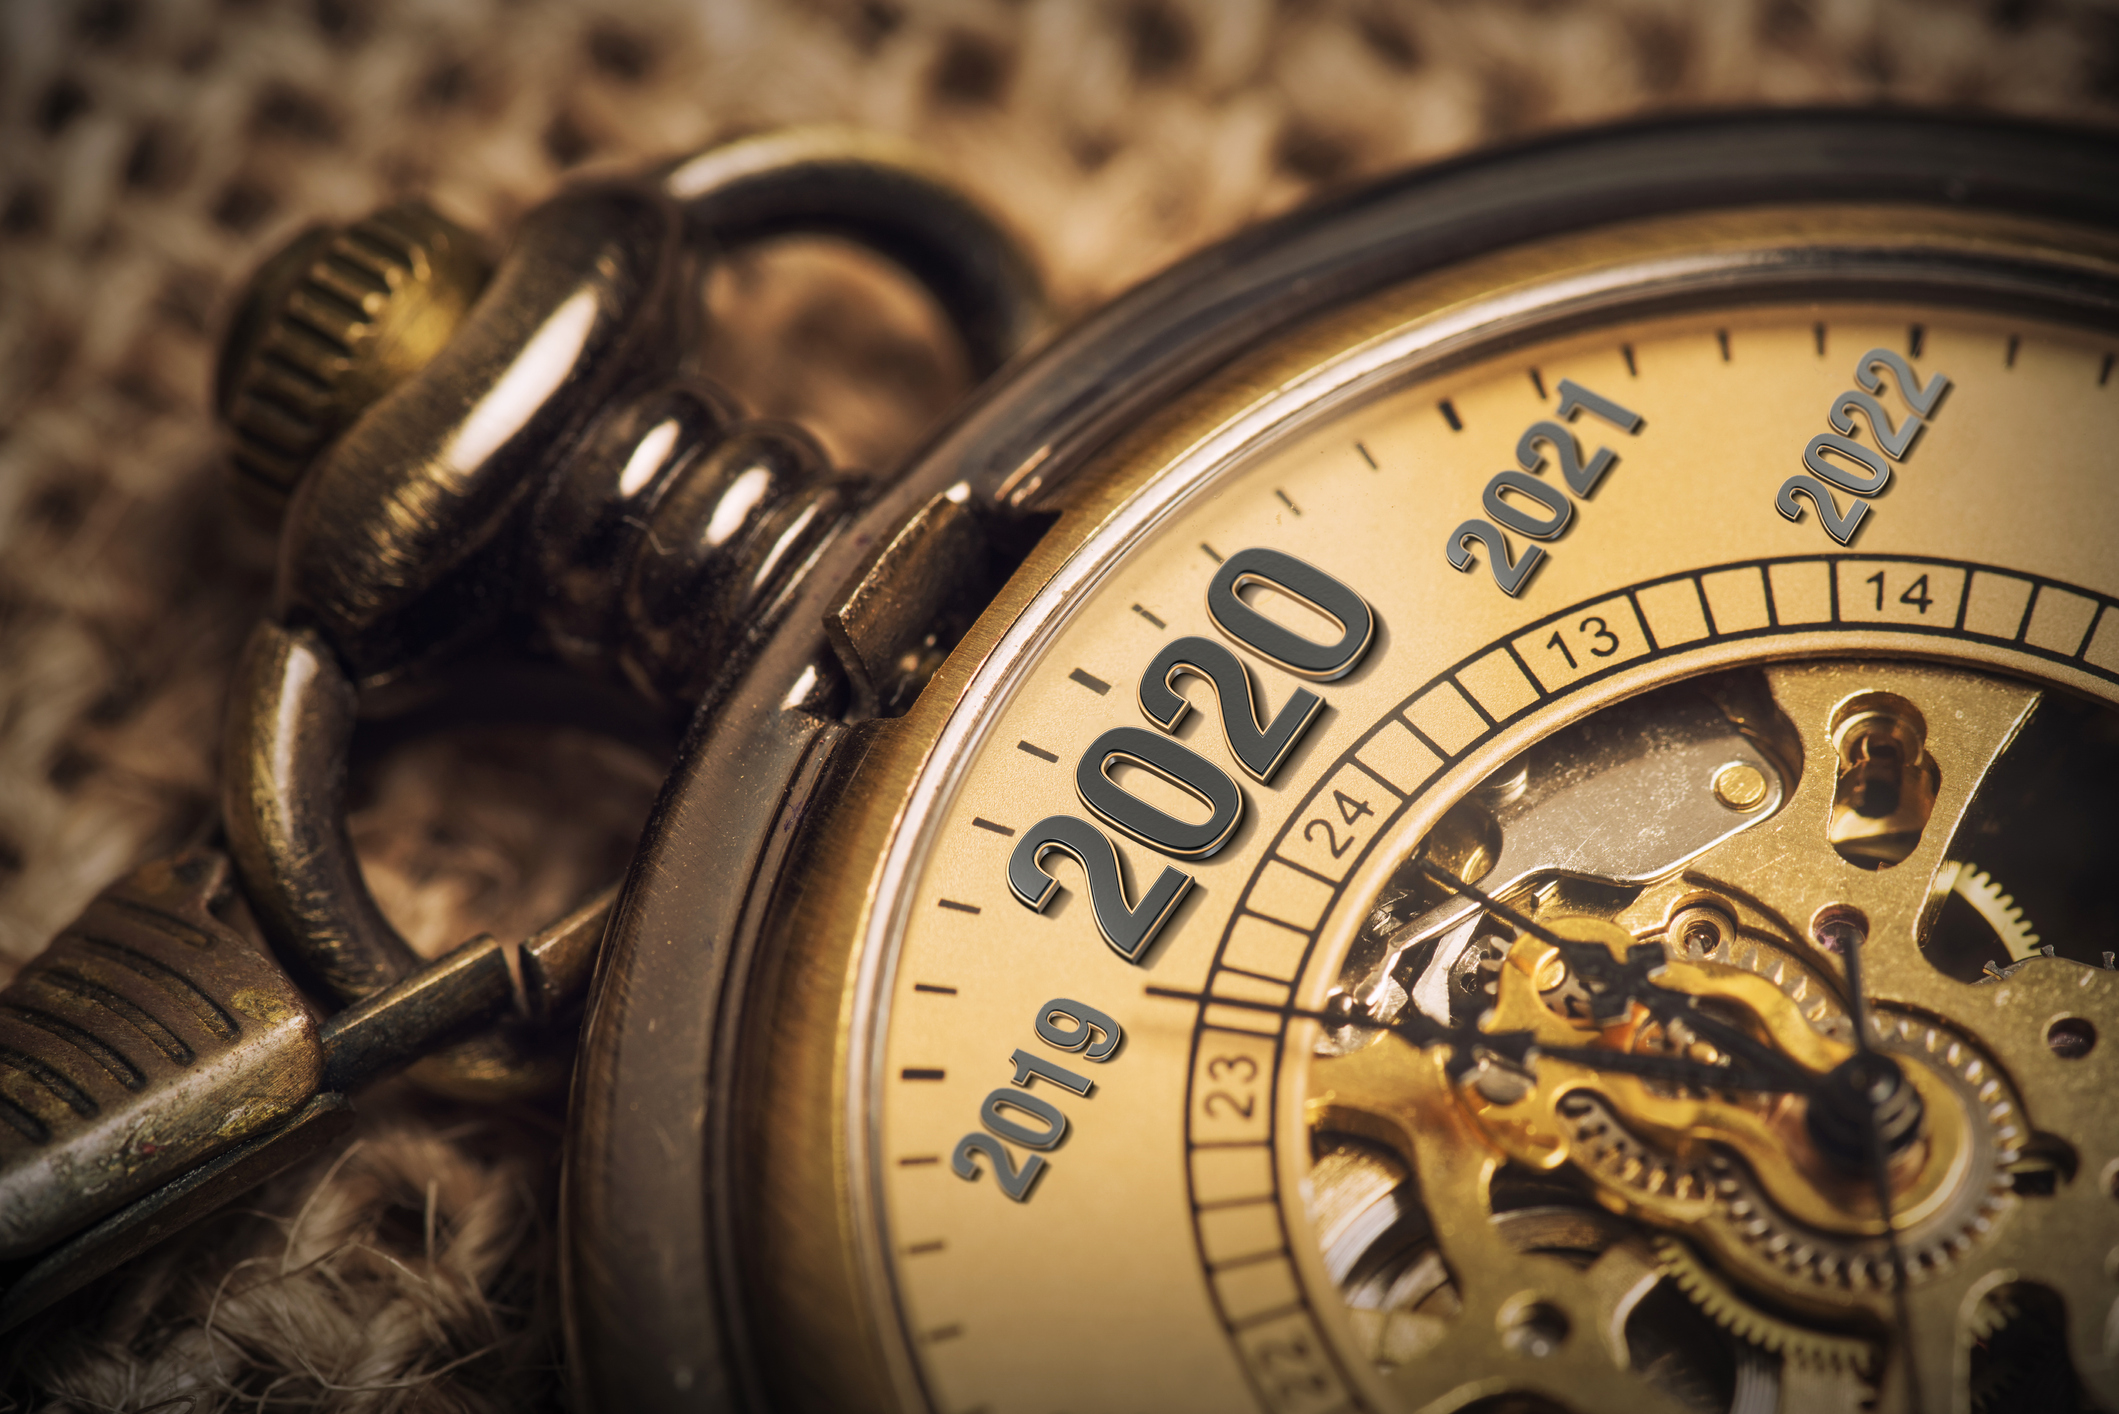 Expecting the new year 2020 with a metaphor of ticking pocket watch.